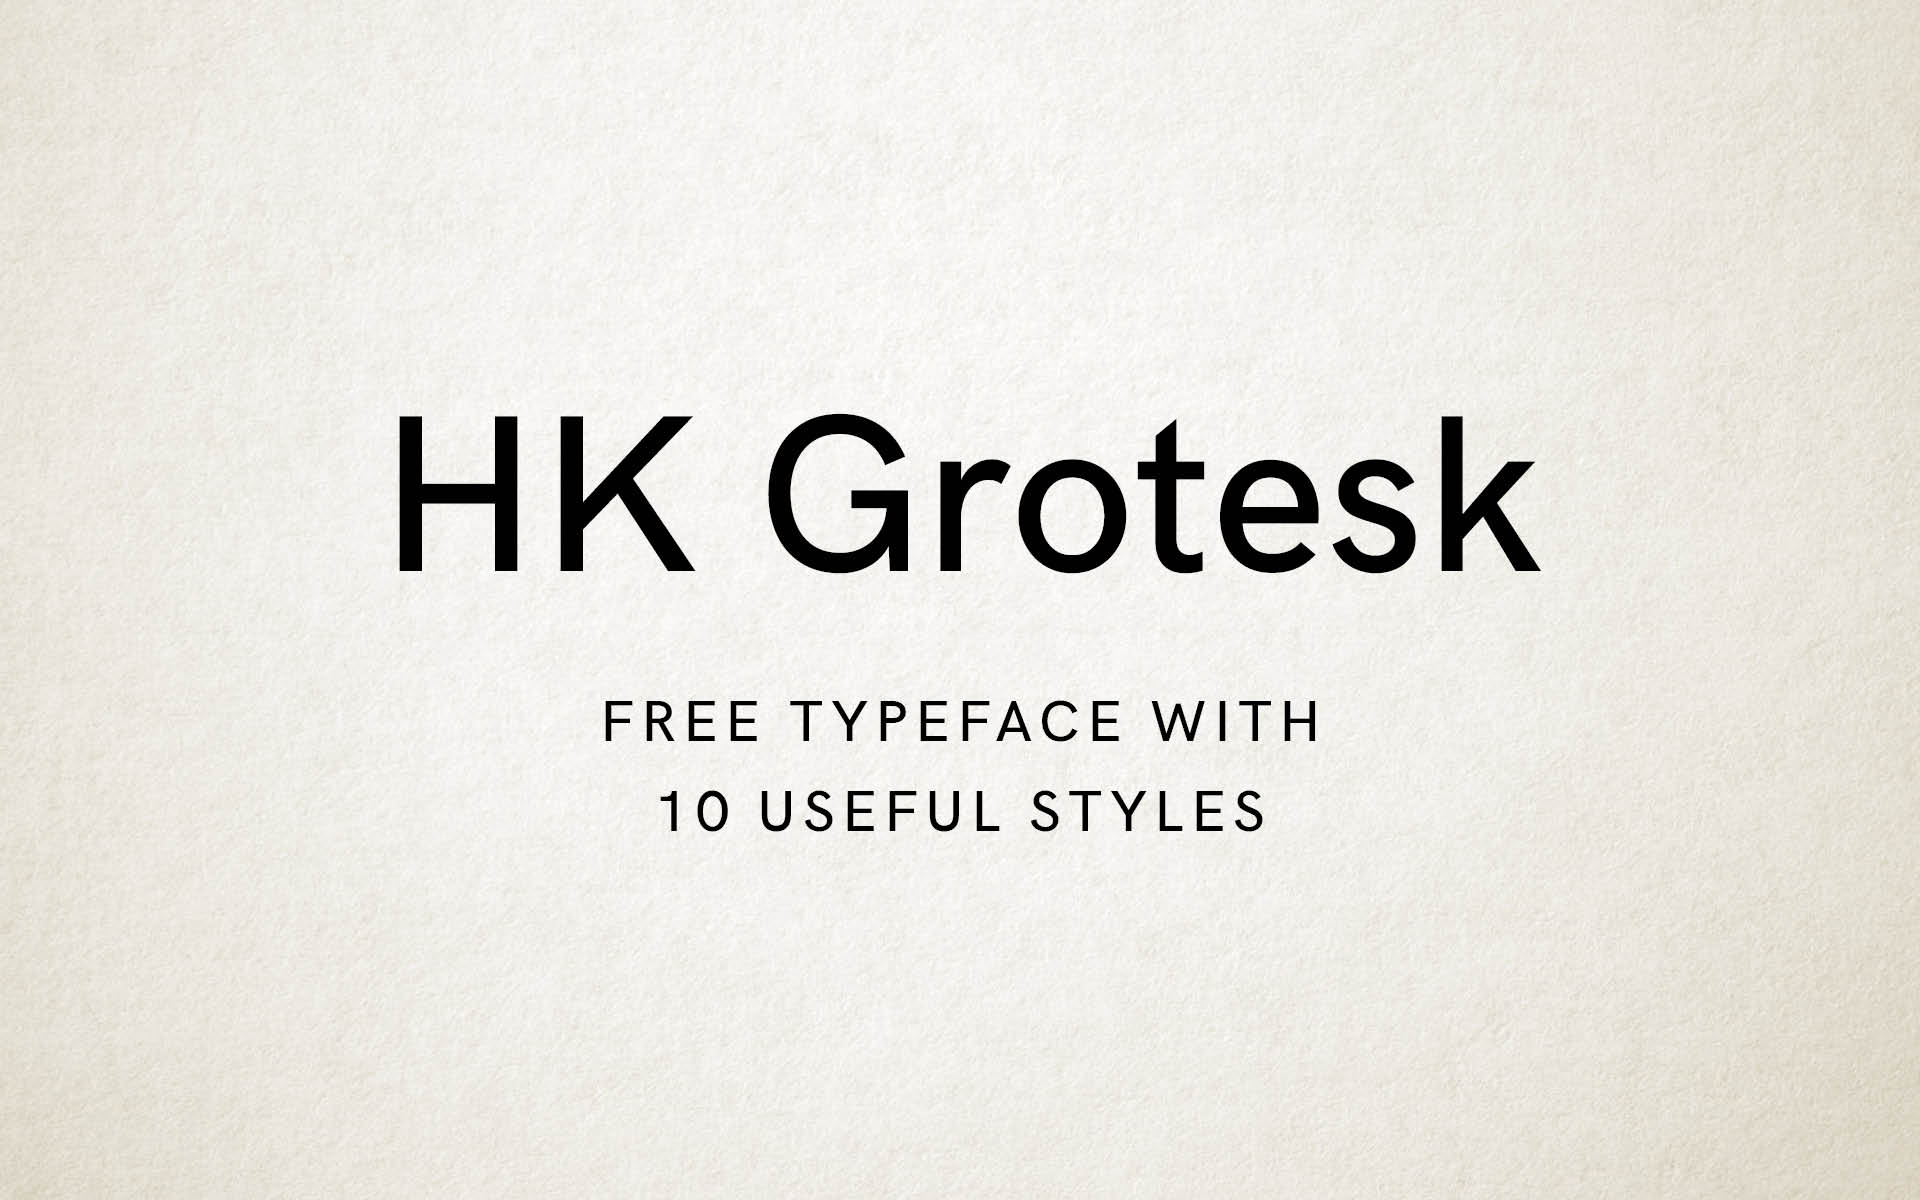 HK Grotesk Font Free by Hanken Design Co  » Font Squirrel